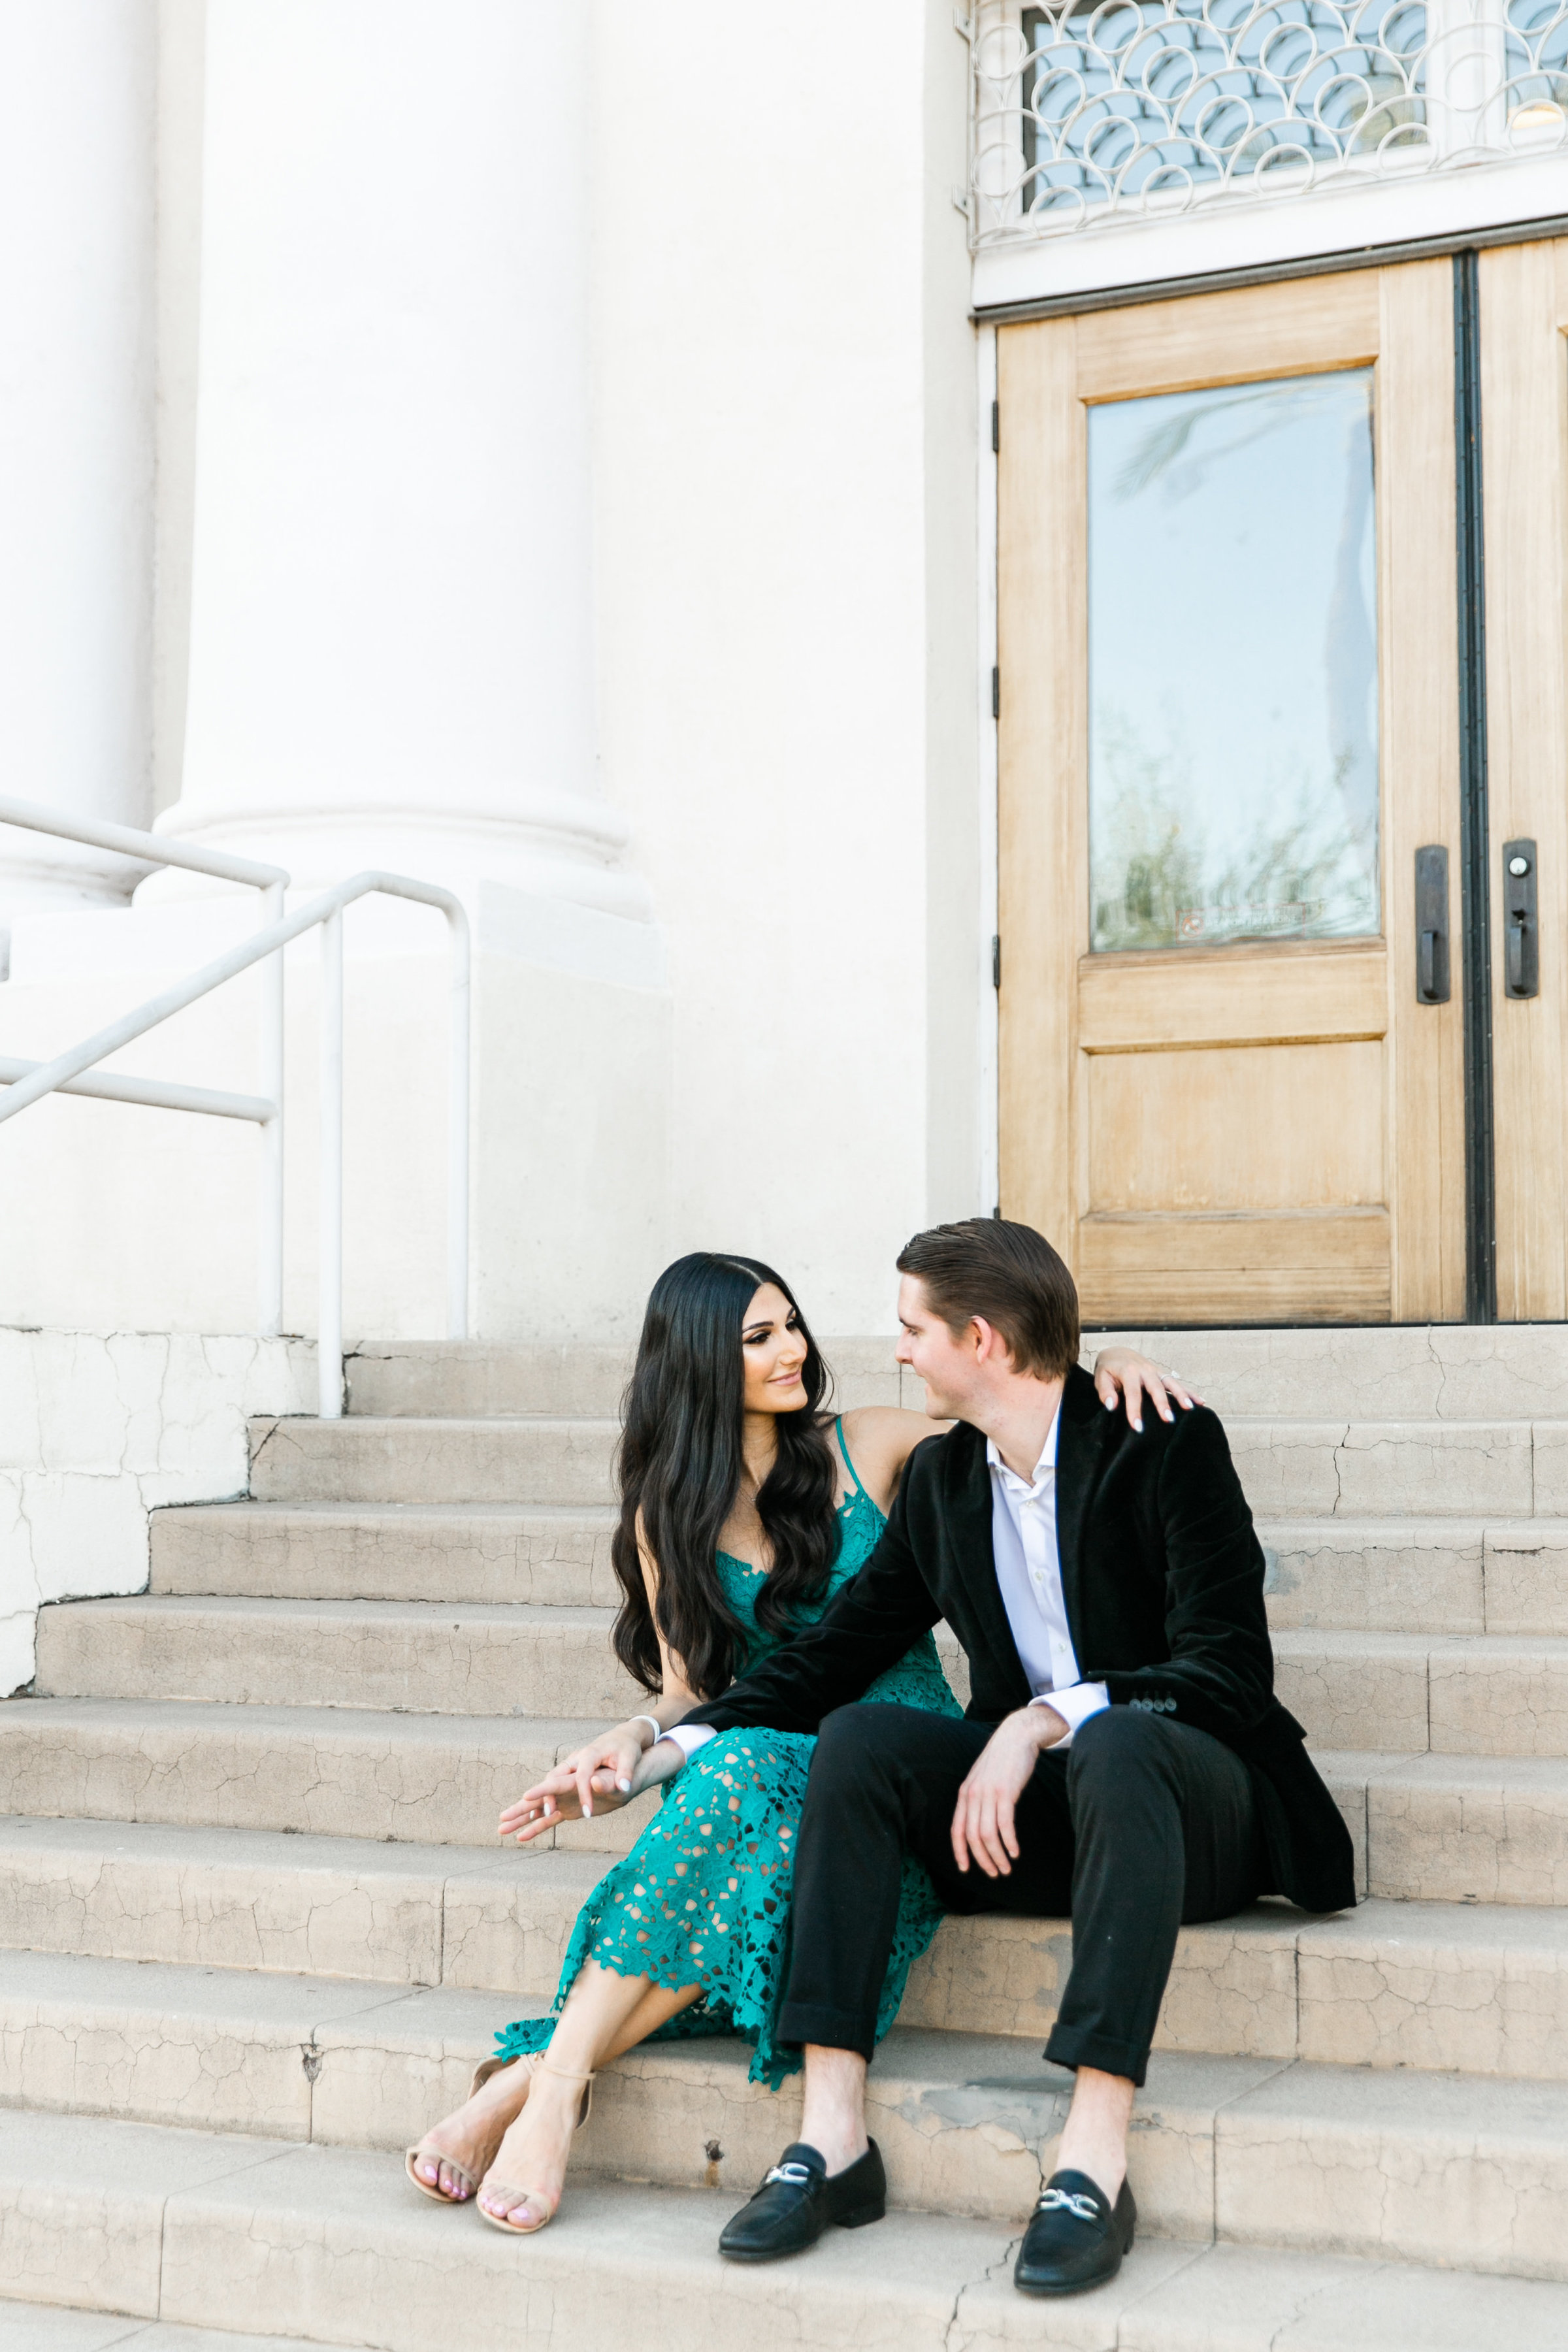 Karlie Colleen Photography - Arizona Engagement City Shoot - Kim & Tim-153